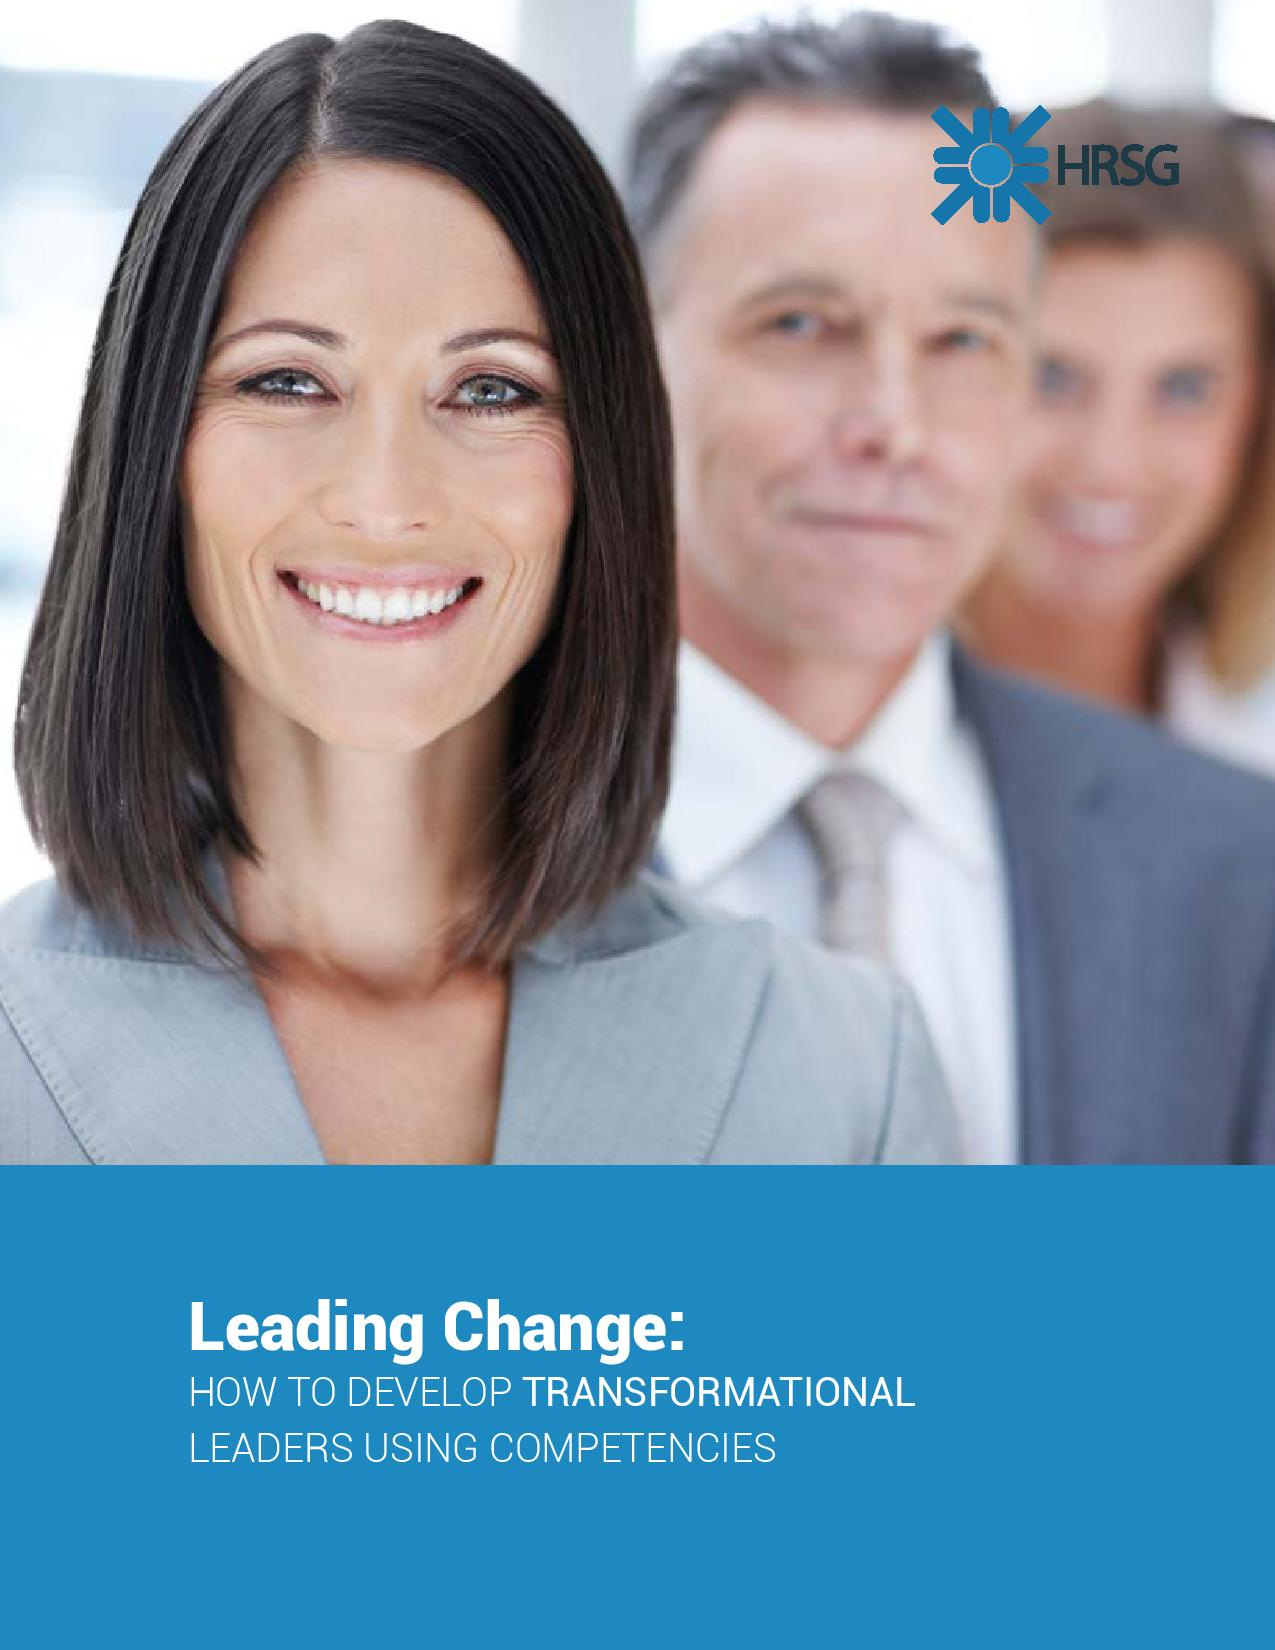 Leading Change: How to Develop Transformational Leaders Using Competencies. TalentGuard